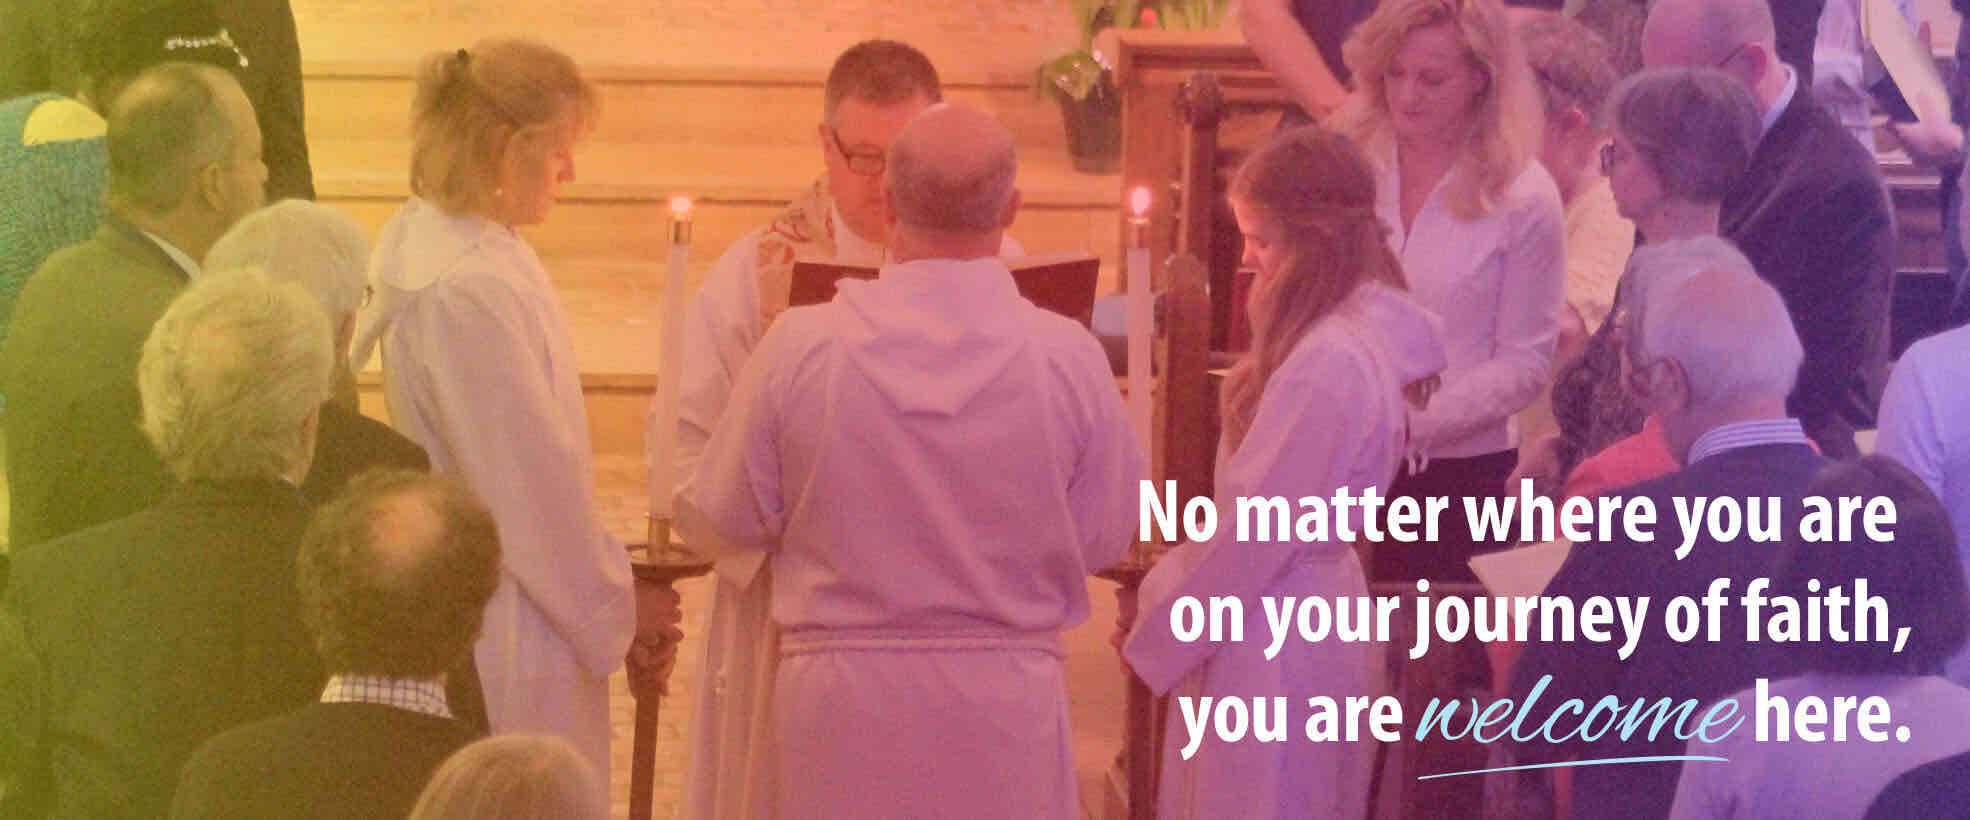 Acolytes with Candles at Easter with 'You are welcome here' text overlay